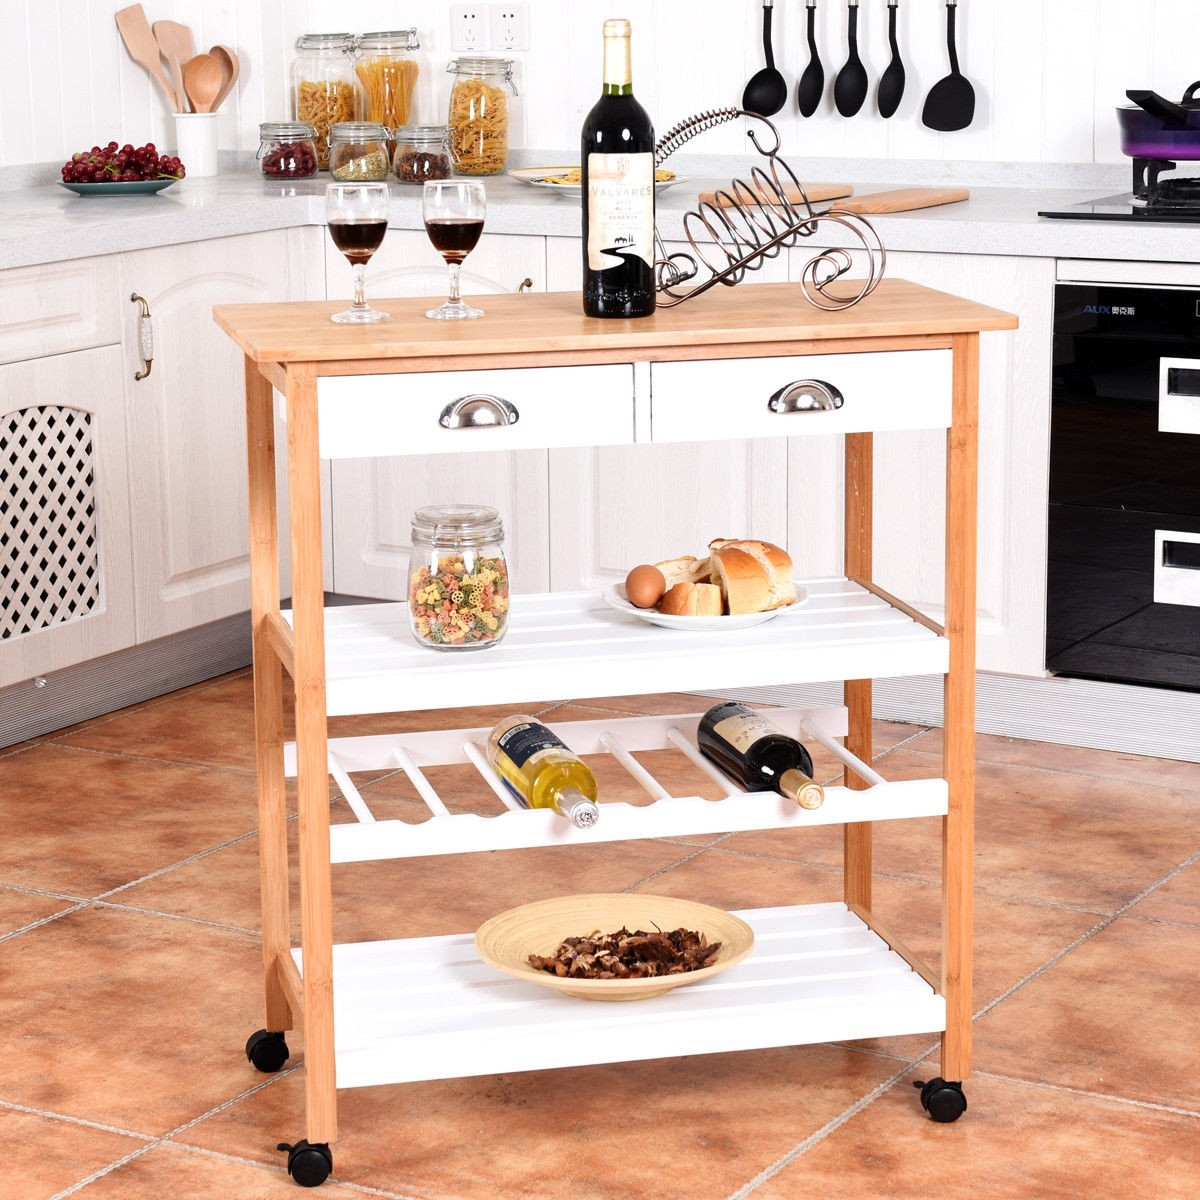 Details about Kitchen Storage Cart Two Drawers Shelves Wine Rack Home  Bamboo Rolling Trolley